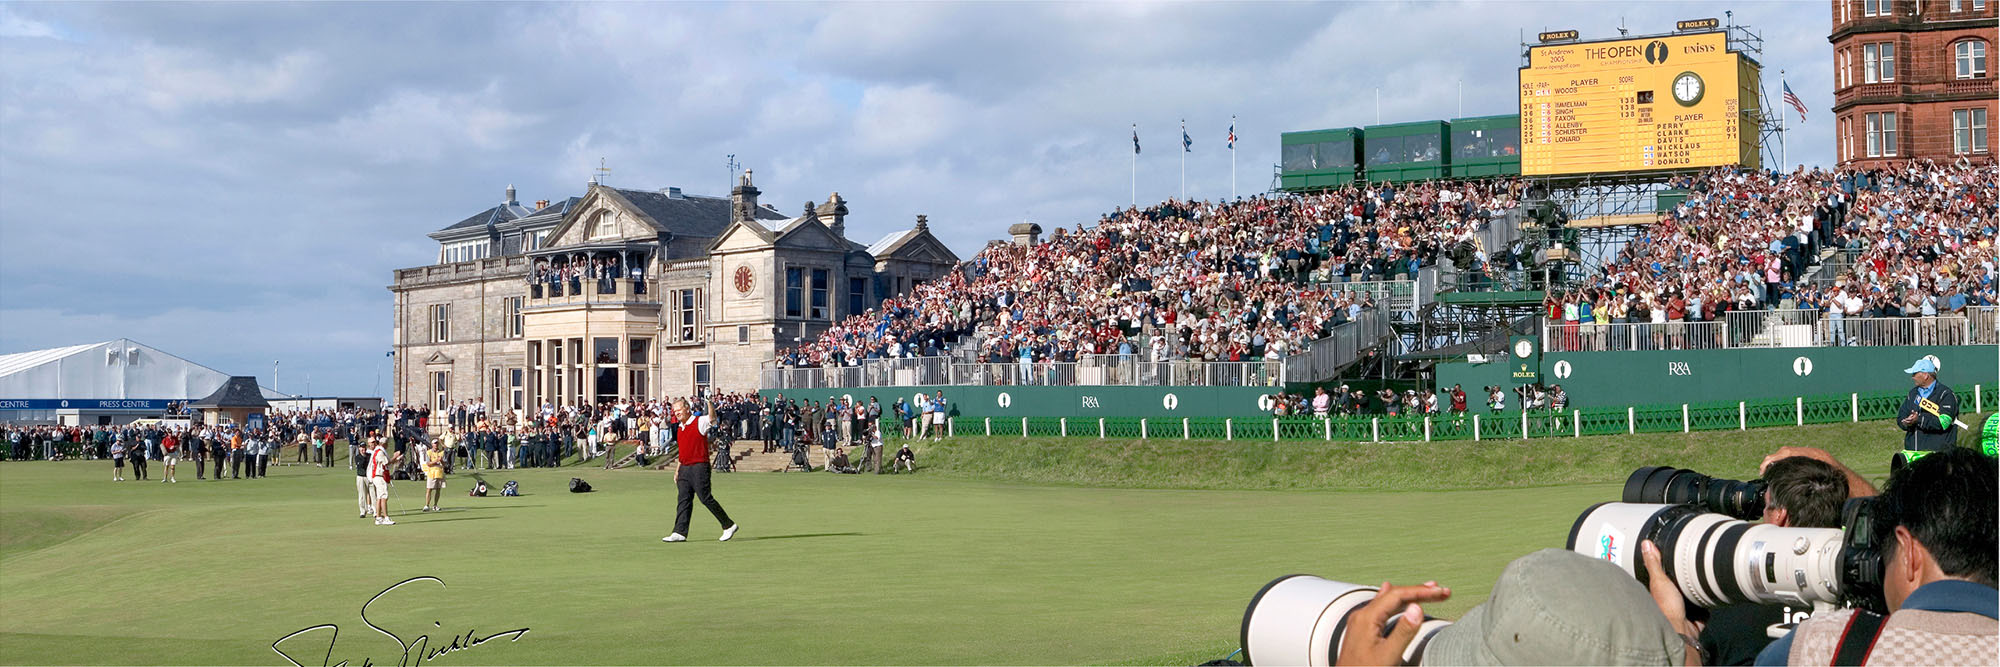 Golf Course Image - Jack Nicklaus British Open No 18